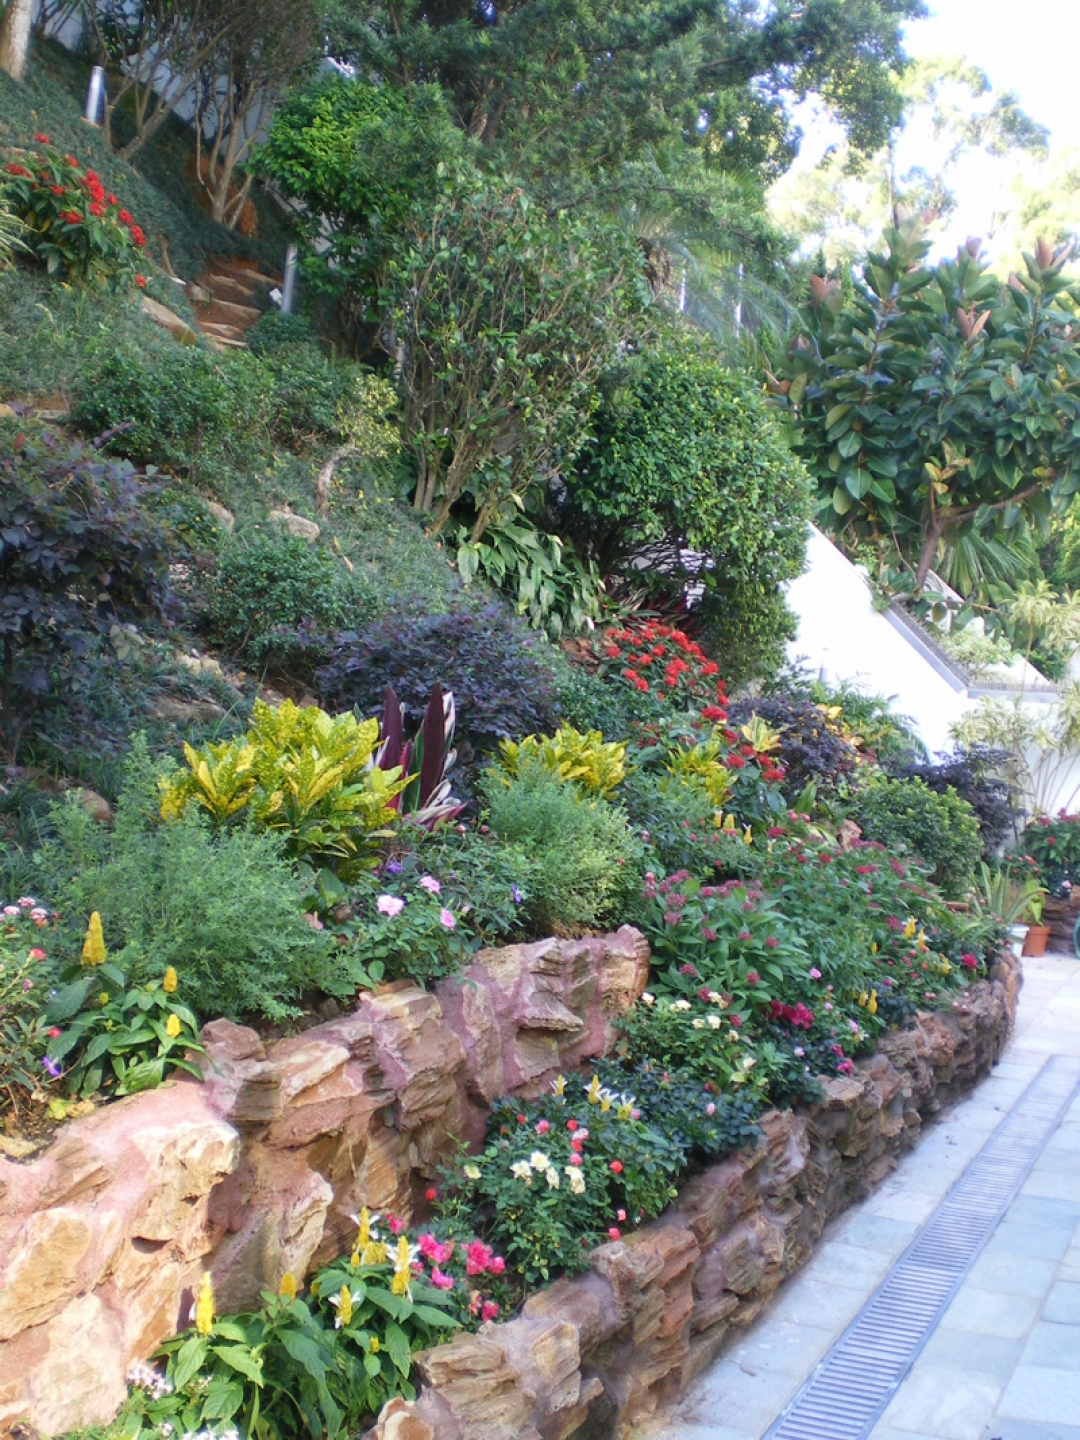 My Garden Landscape Design & Engineer Company Limied